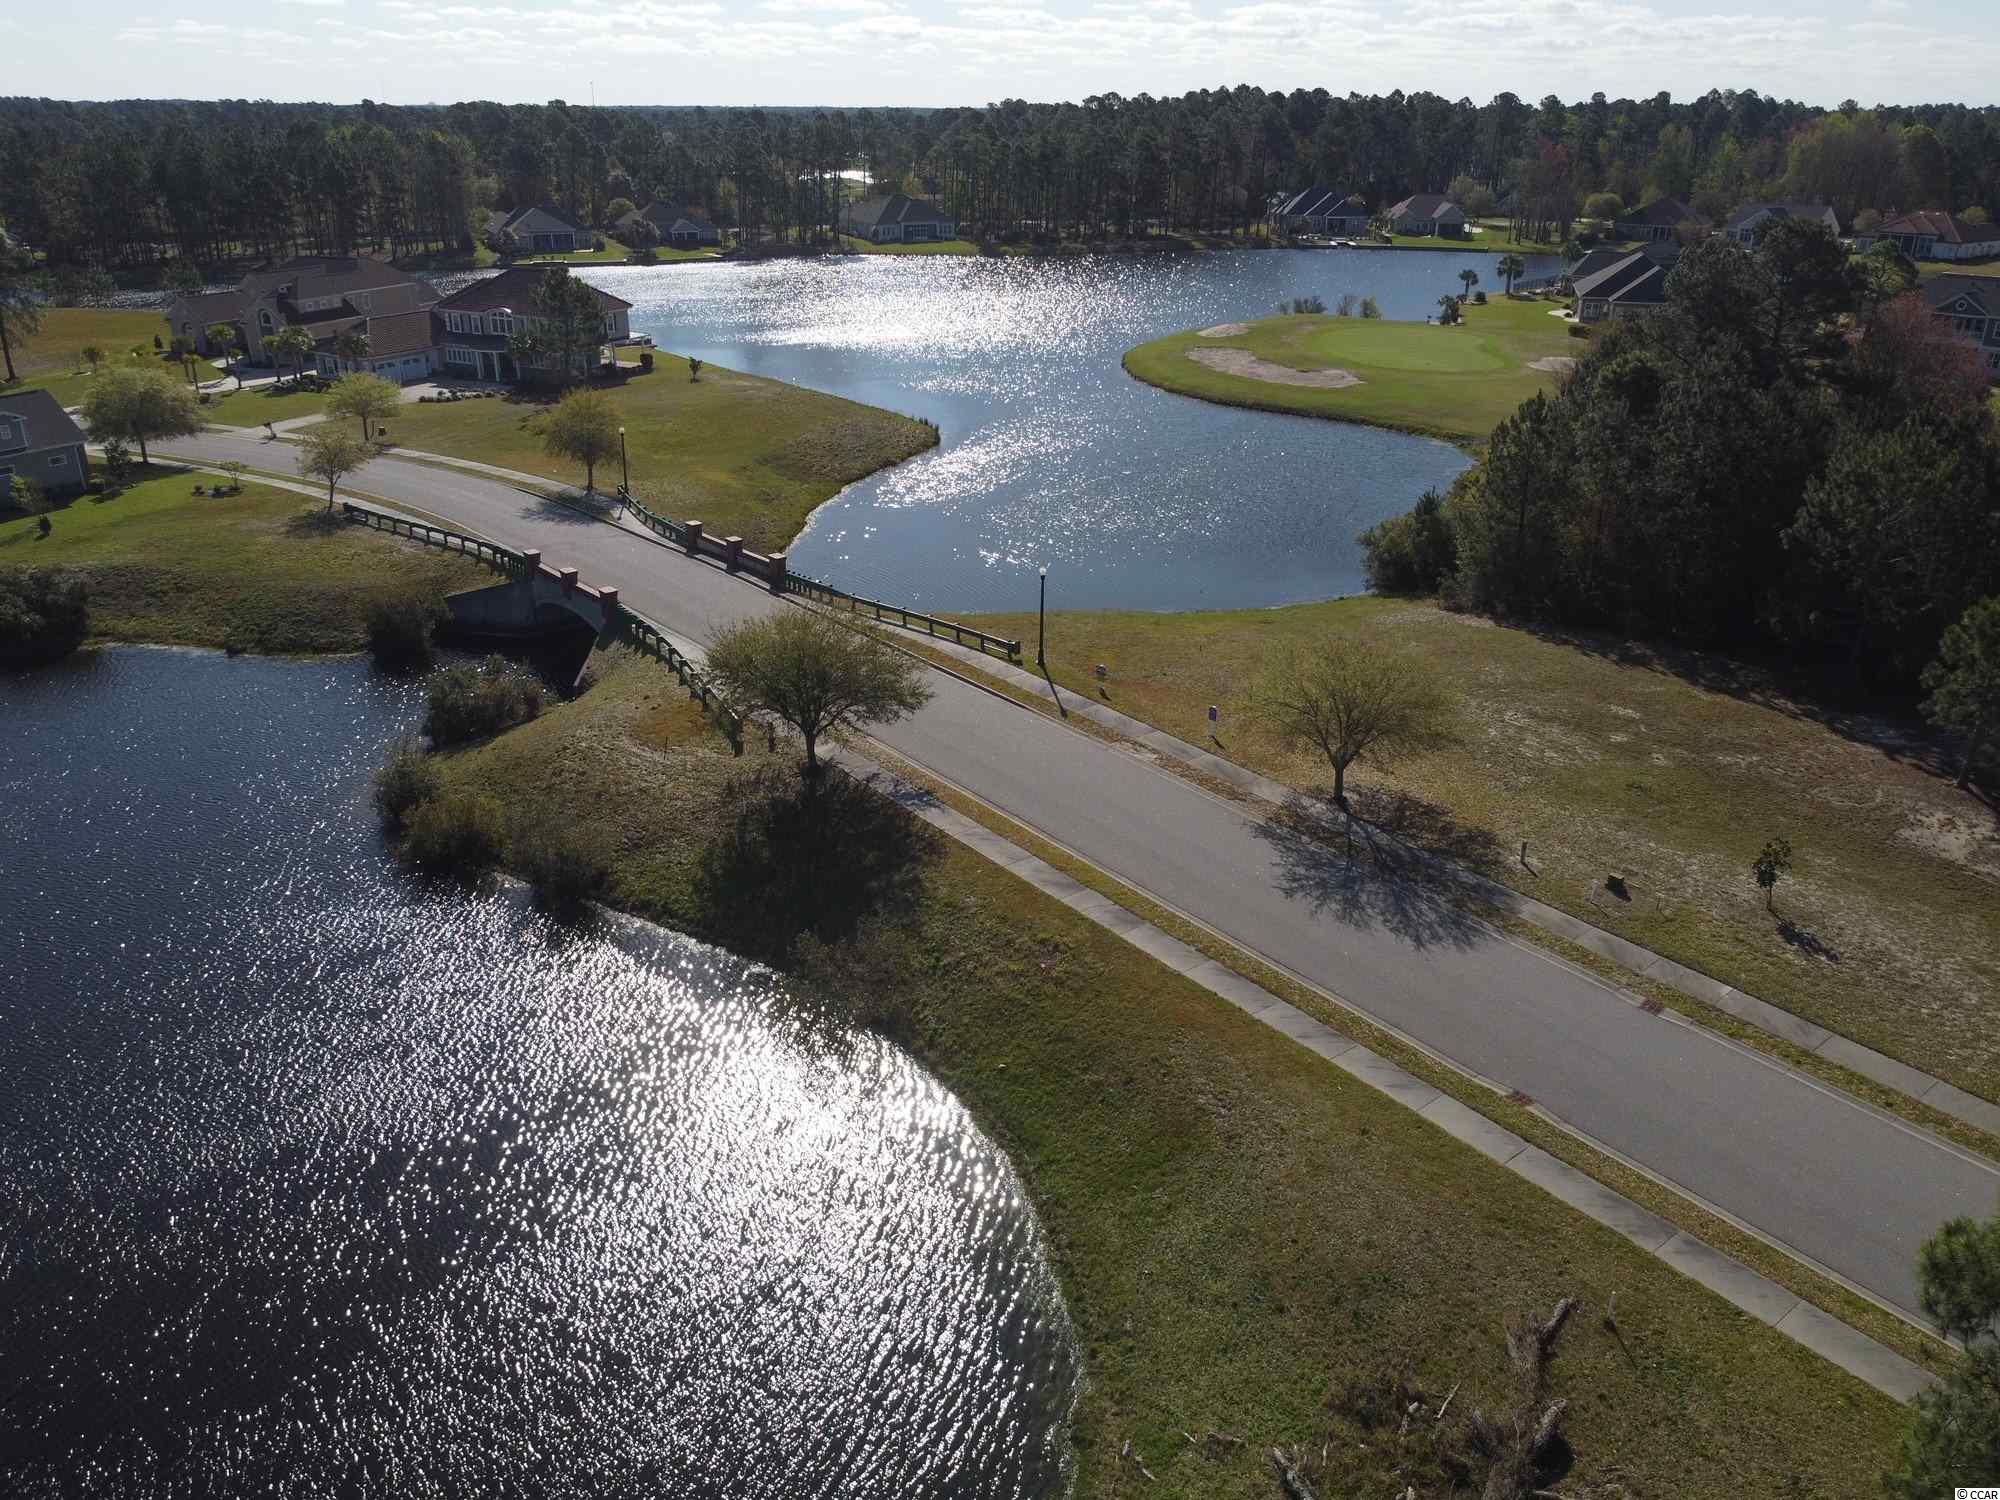 WATERVIEW LOT in beautiful & highly desired golf community of Wild Wing Plantation. No time line to build and lots of builder options in the area. Wild Wing is gorgeous and offers NATURAL GAS, a beautiful clubhouse, SIDEWALK streets, pools, basketball court, RV storage, BOAT storage, lots of public lake view and popular Hummingbird golf course. Conway is just a short drive to everything Myrtle Beach has to offer including Coastal Grande Mall, Tanger Outlets, marinas, public docks, landings, restaurants, golf courses, shops, entertainment, Myrtle Beach International Airport, The Market Common, Broadway At The Beach, The Market Common, Barefoot Resort and Coastal Carolina University (CCU). Also, only 90 miles to beautiful Charleston, SC!